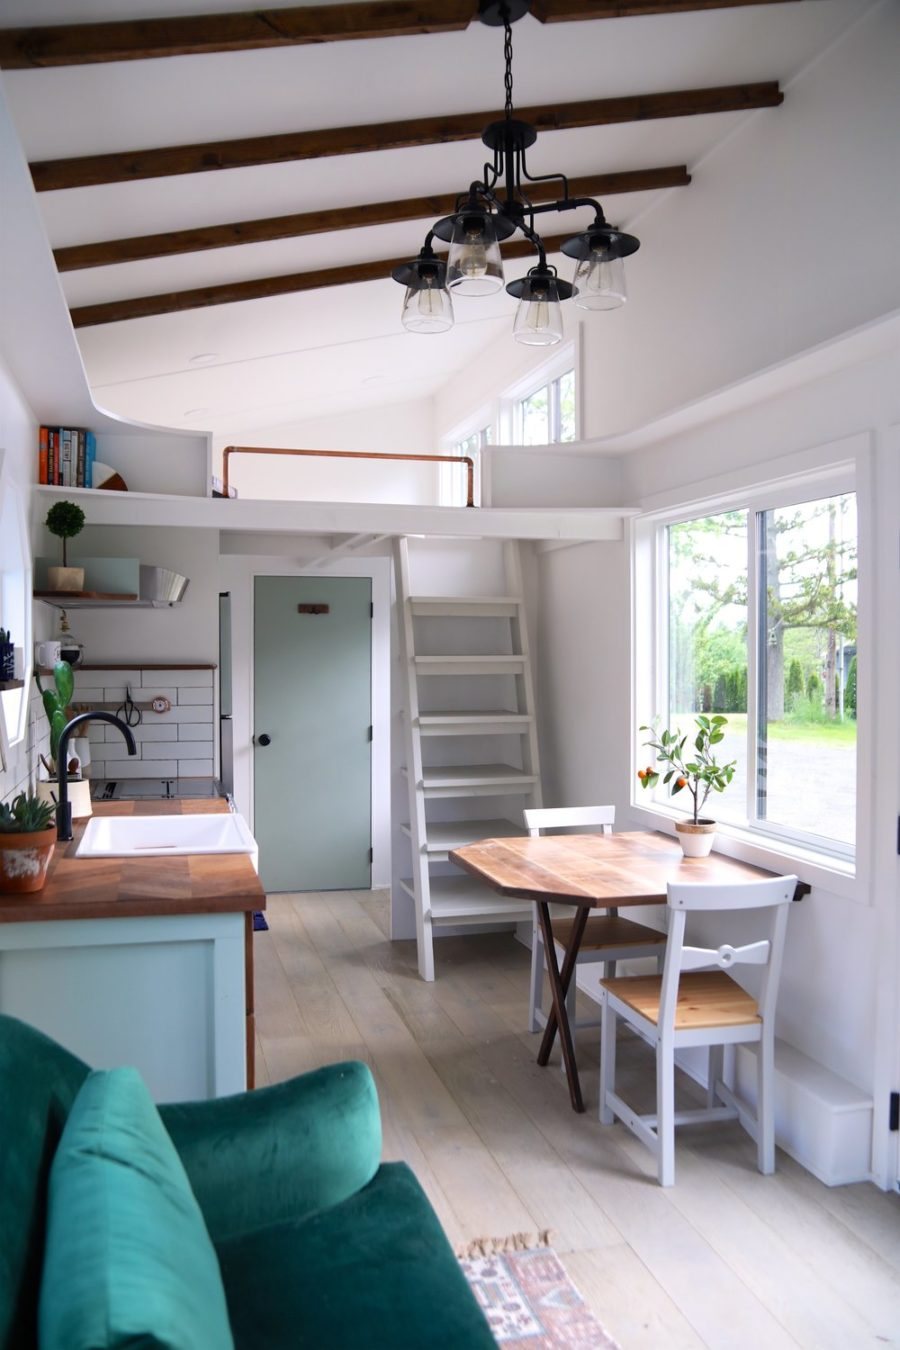 Pacific Harbor Tiny House by Handcrafted Movement